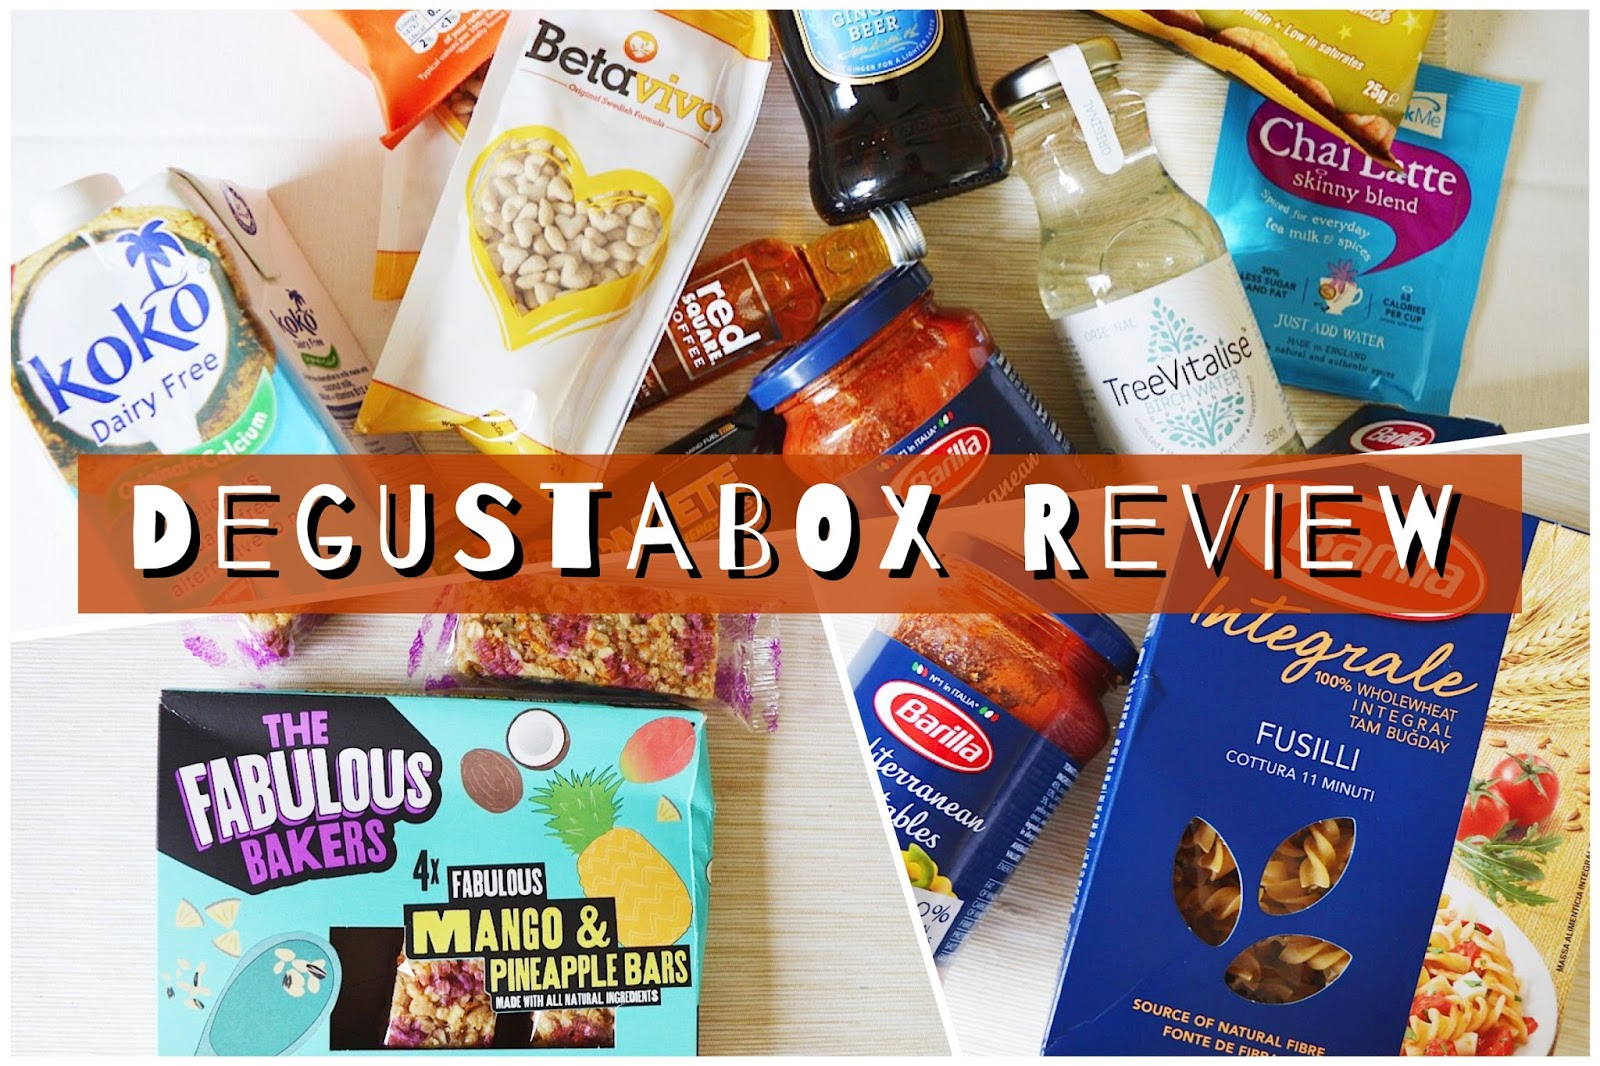 Degustabox Review of the December monthly subscription food box